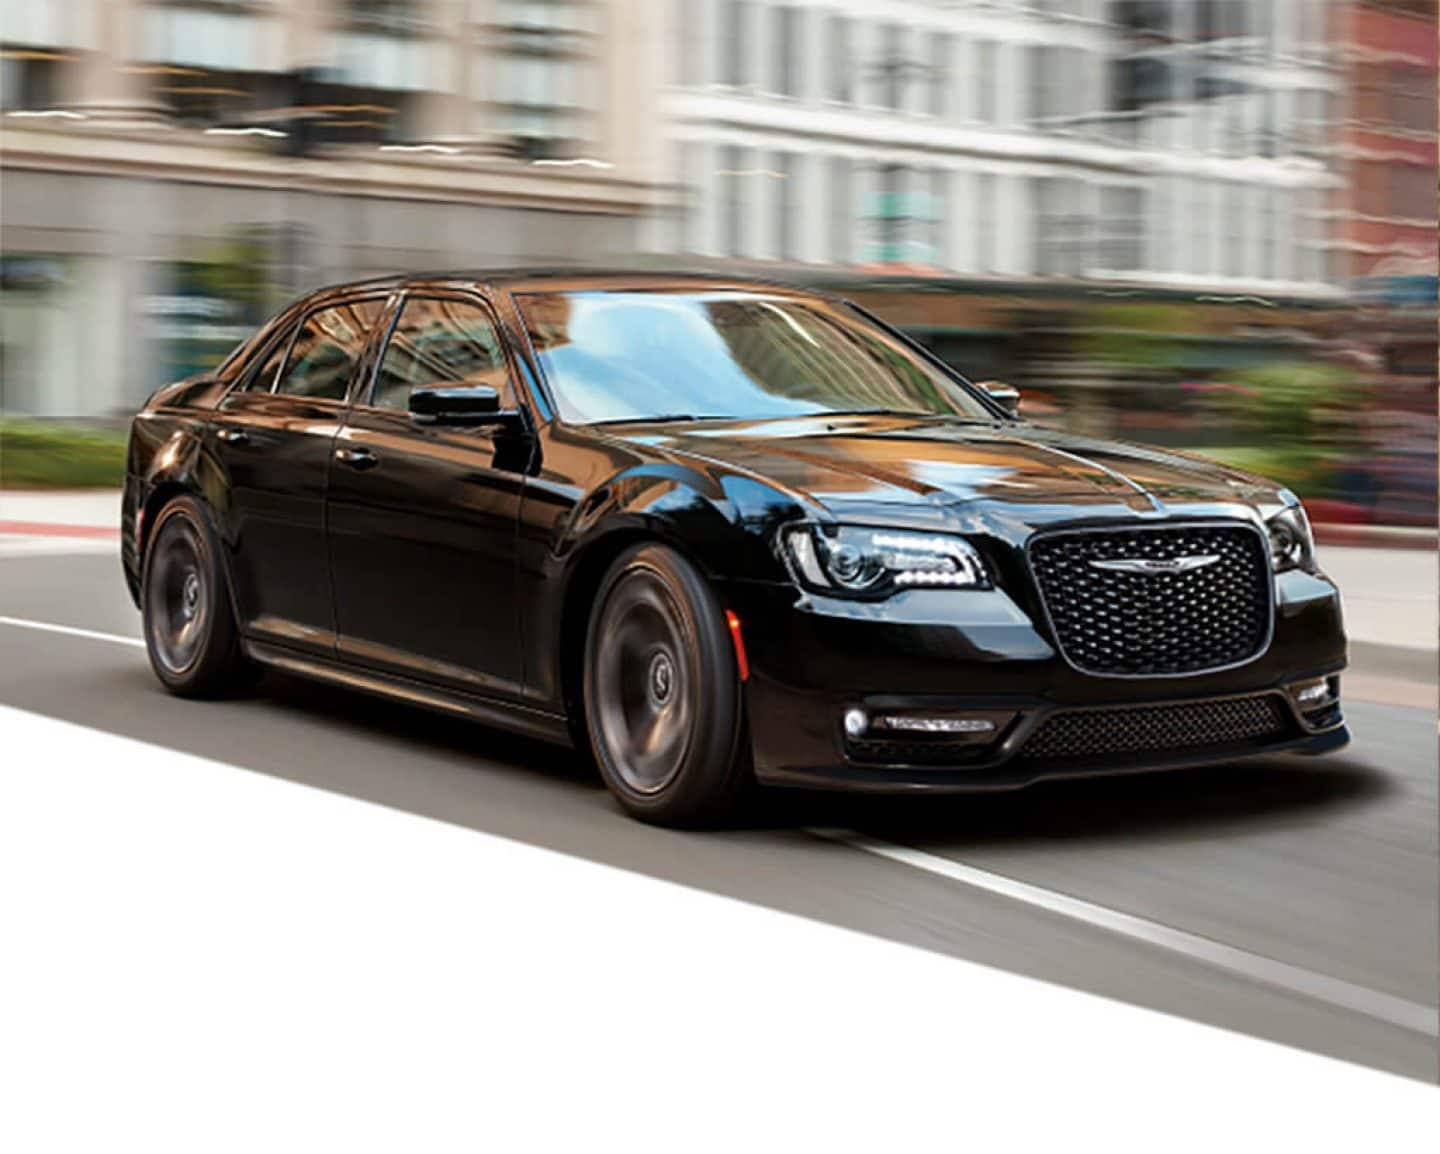 89 New 2019 Chrysler 300 Release Date Price